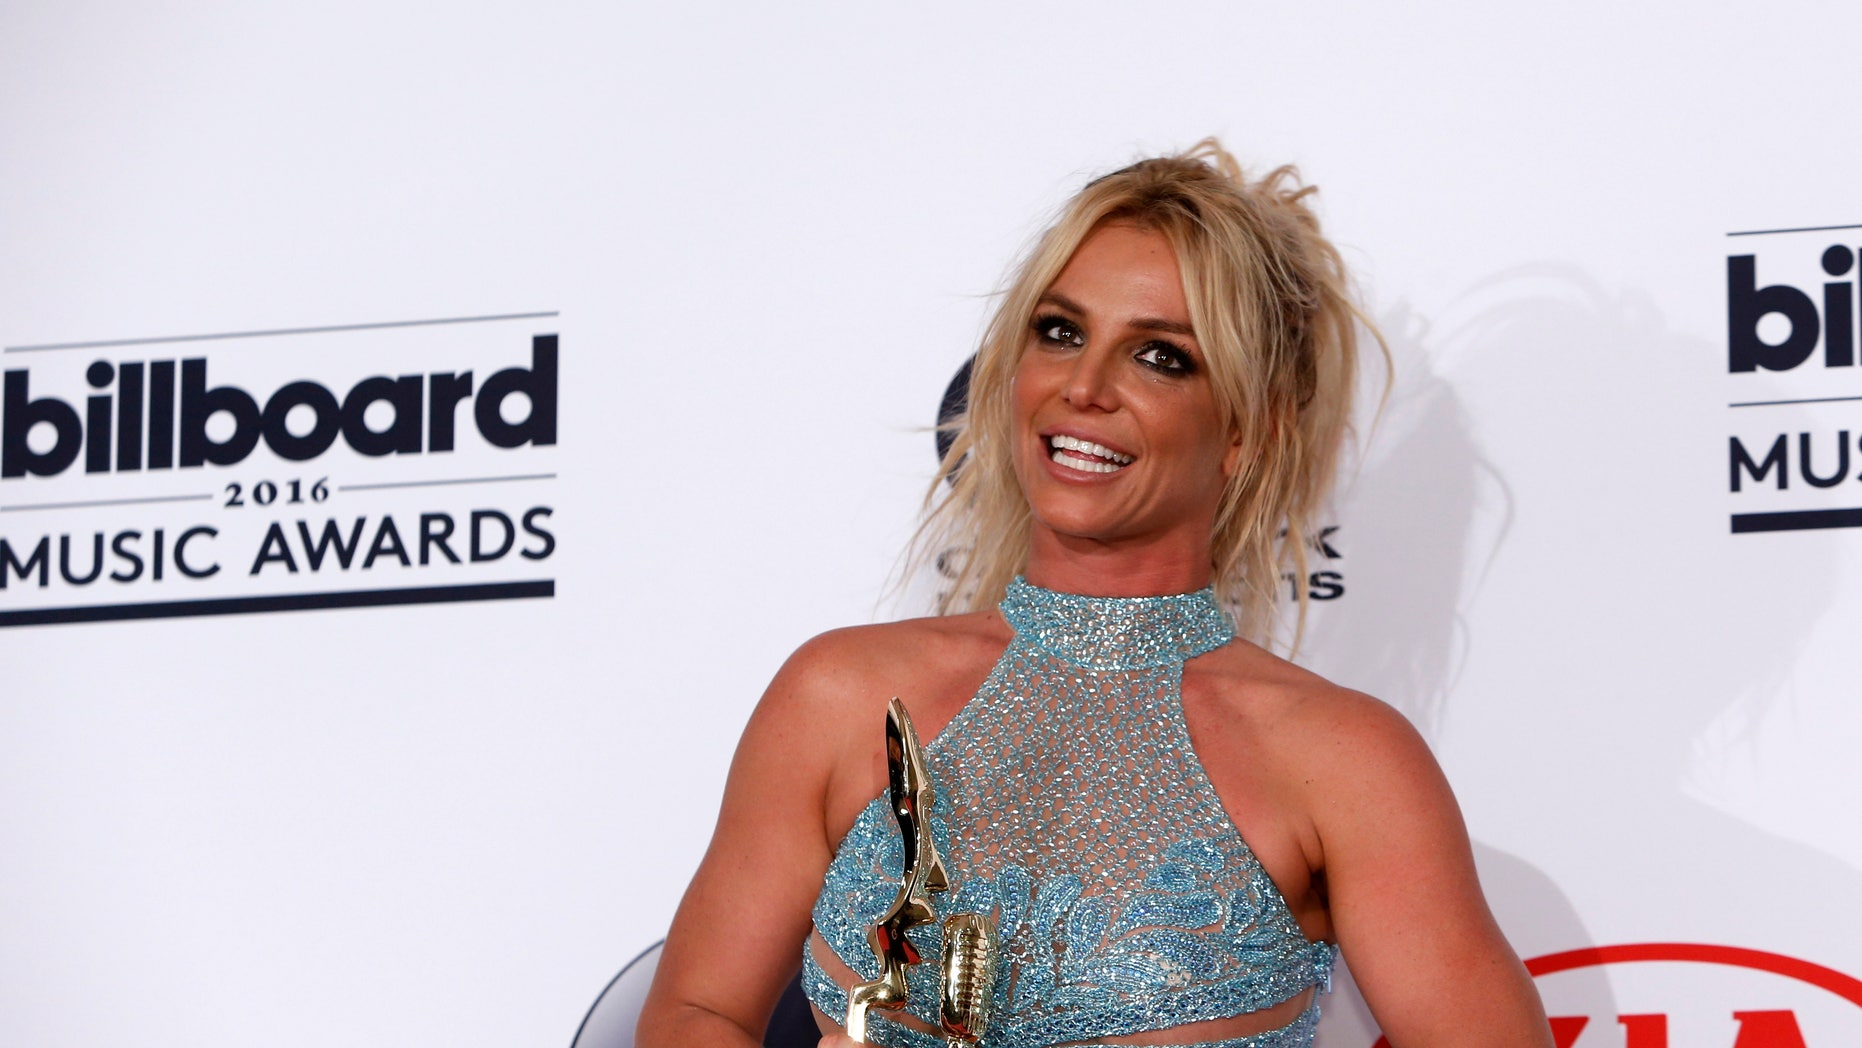 Britney Spears at the 2016 Billboard Awards.